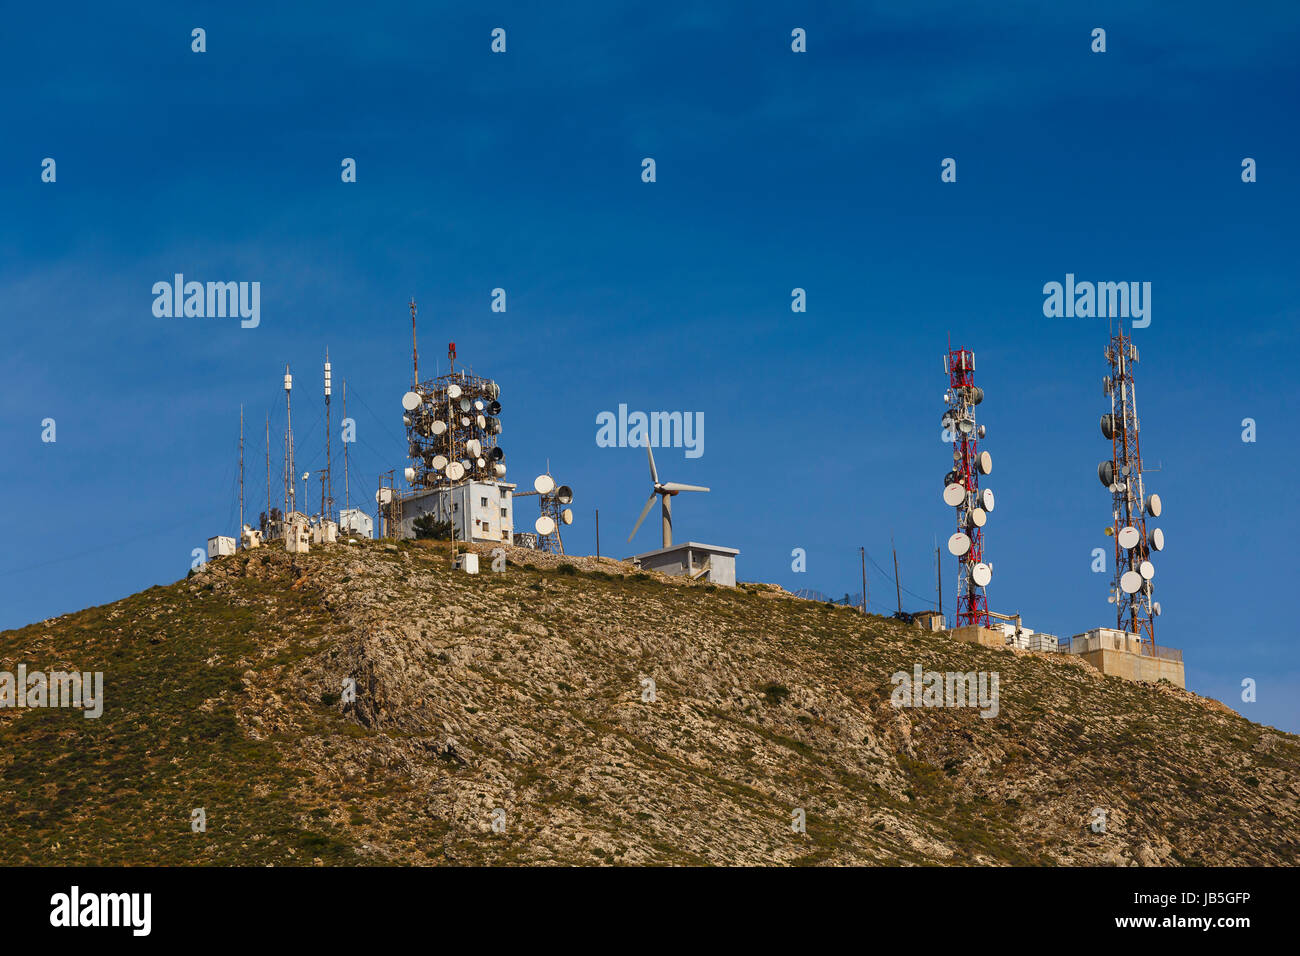 Telecommunication antenas on a hilltop over Ermoupoli town on Syros island in Greece. - Stock Image